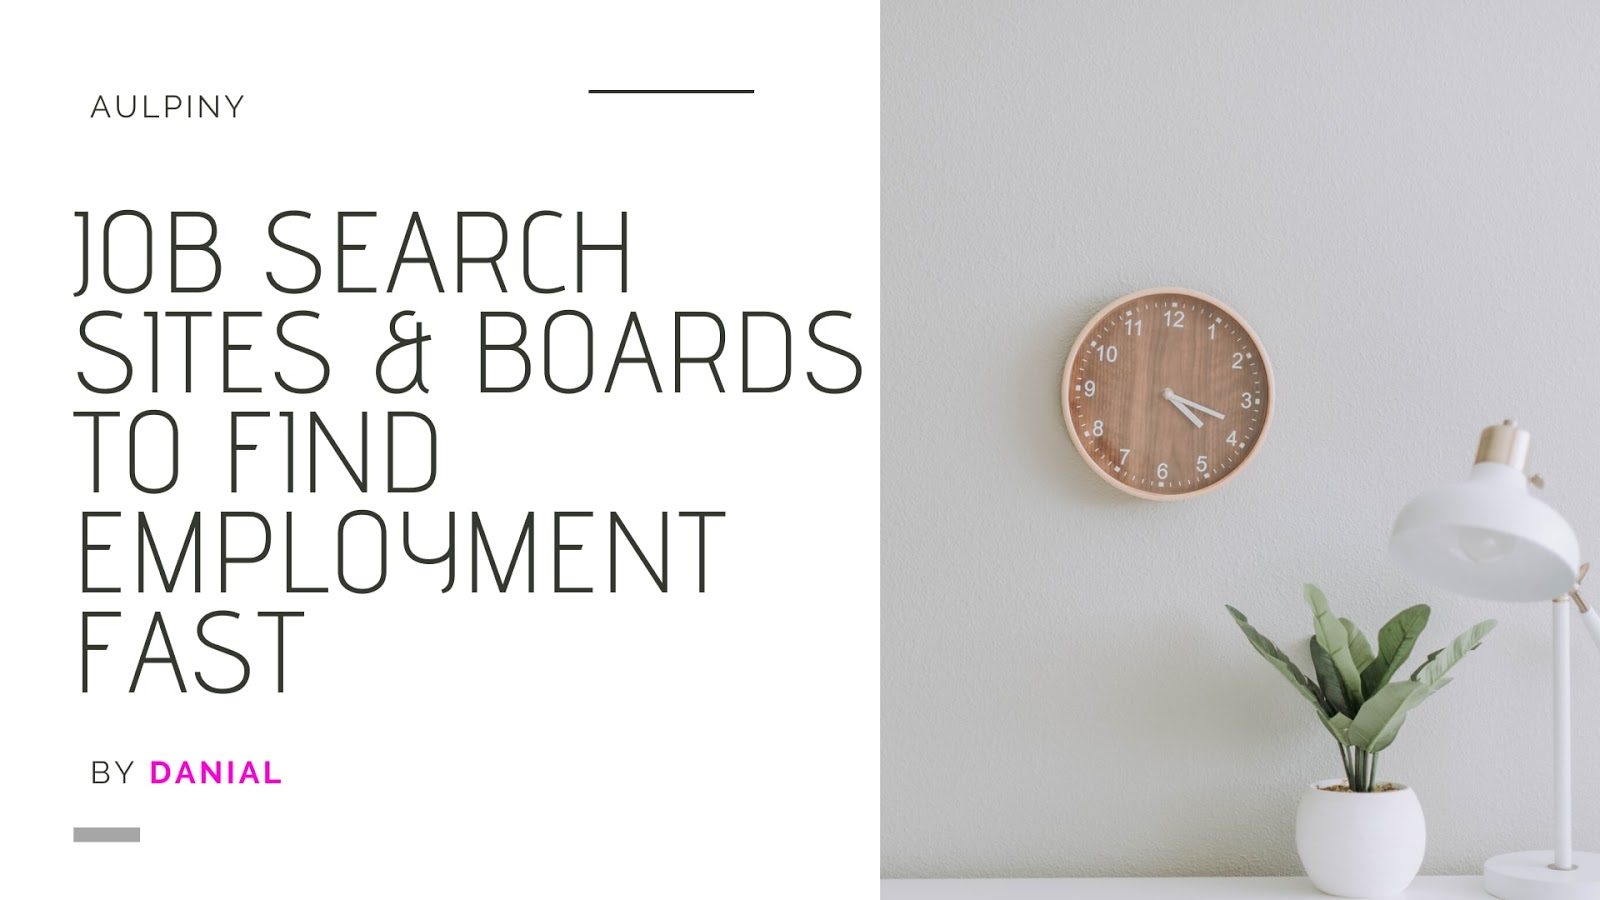 Top 51 Job Search Sites Boards To Find Employment Fast 2020